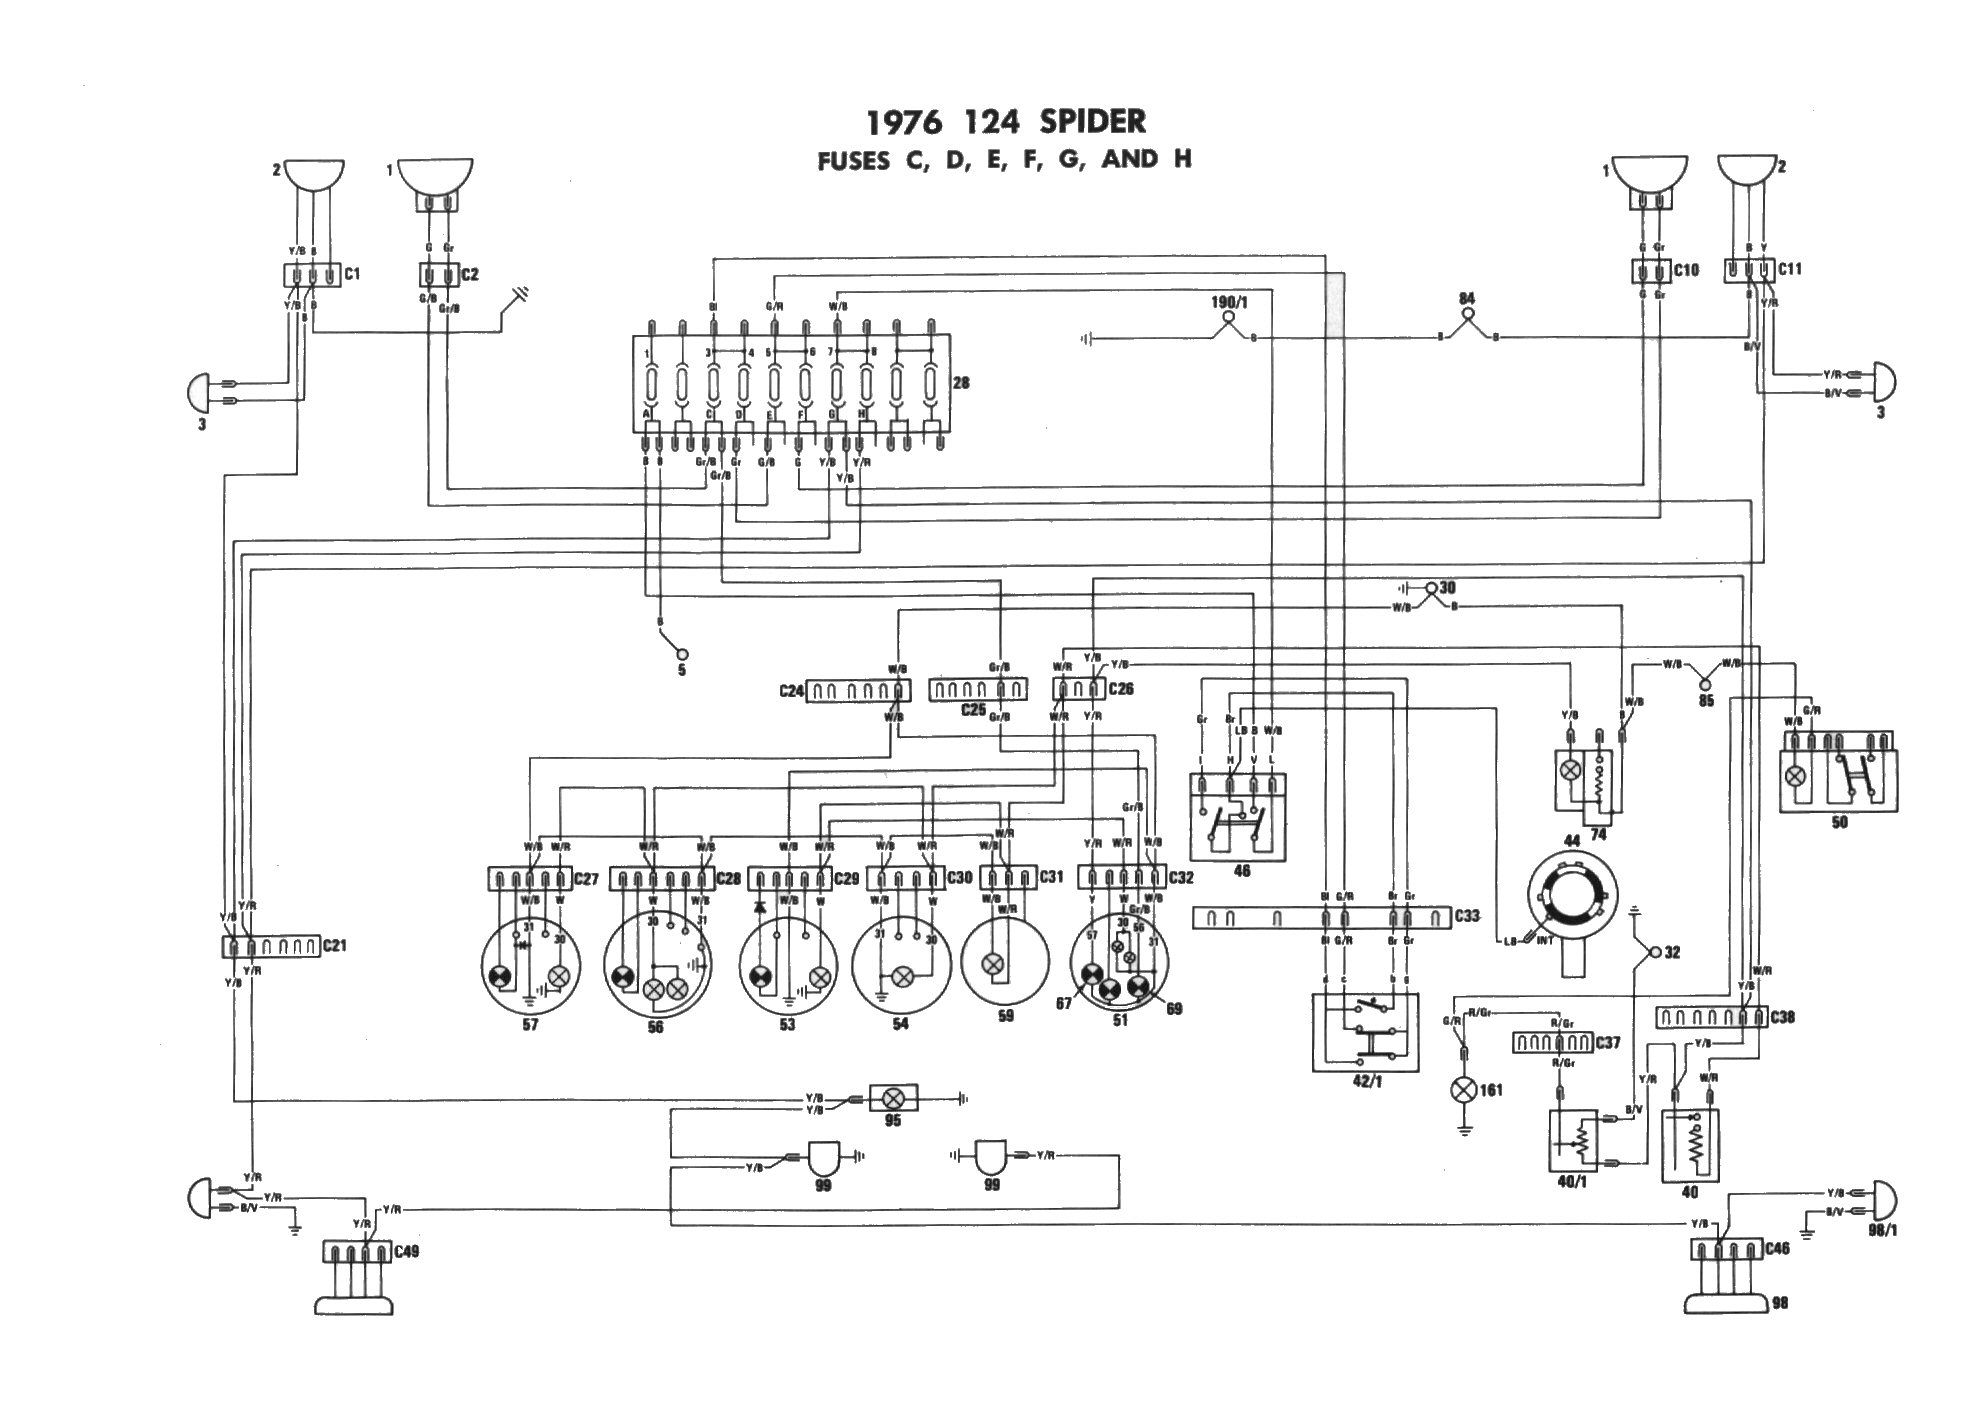 hight resolution of 1976 spider page 8